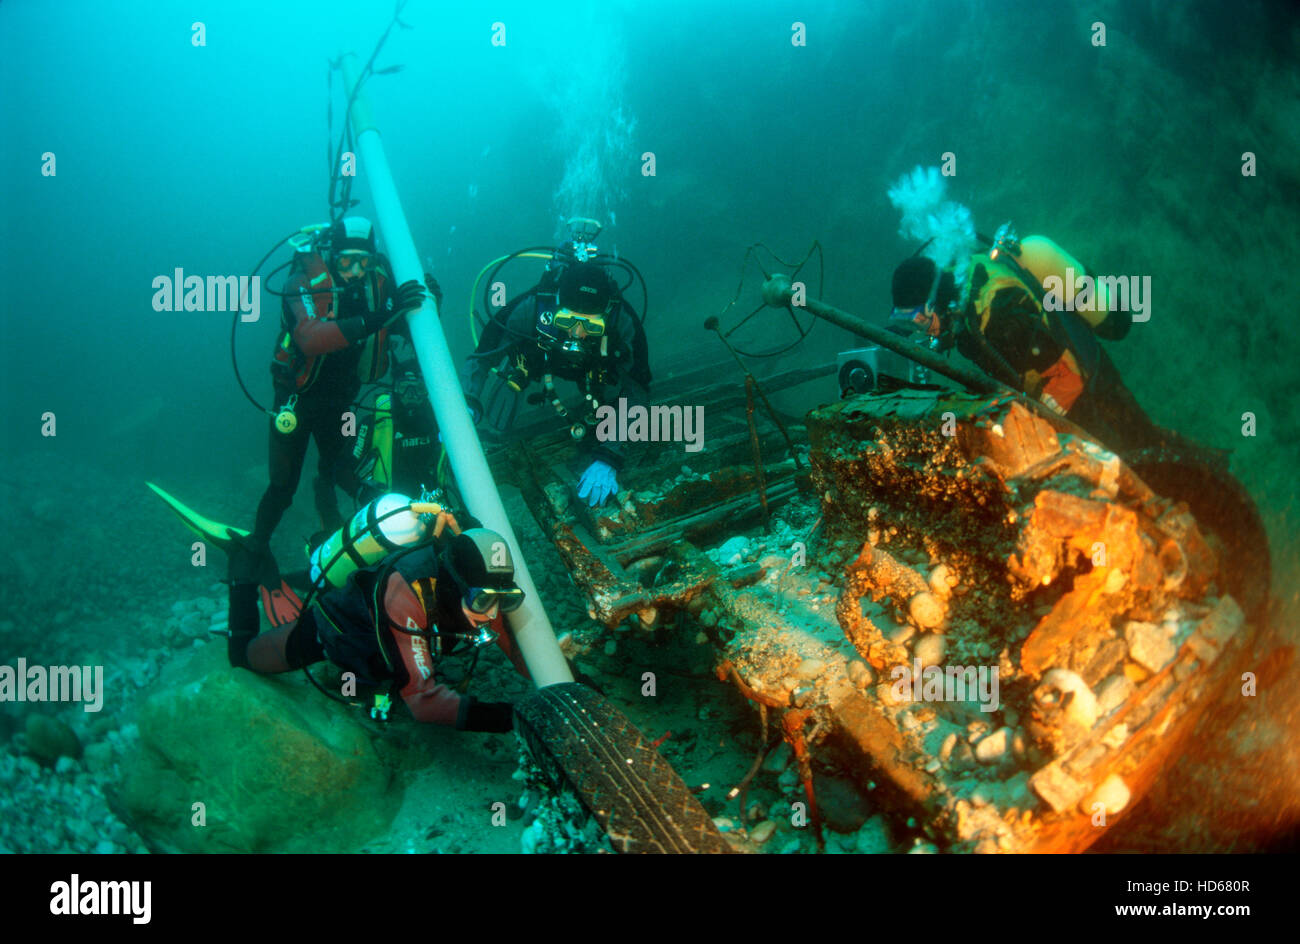 Scuba divers excavating a sunken truck from the 2nd World War in the river Enns, Upper Austria, Austria, Europe - Stock Image